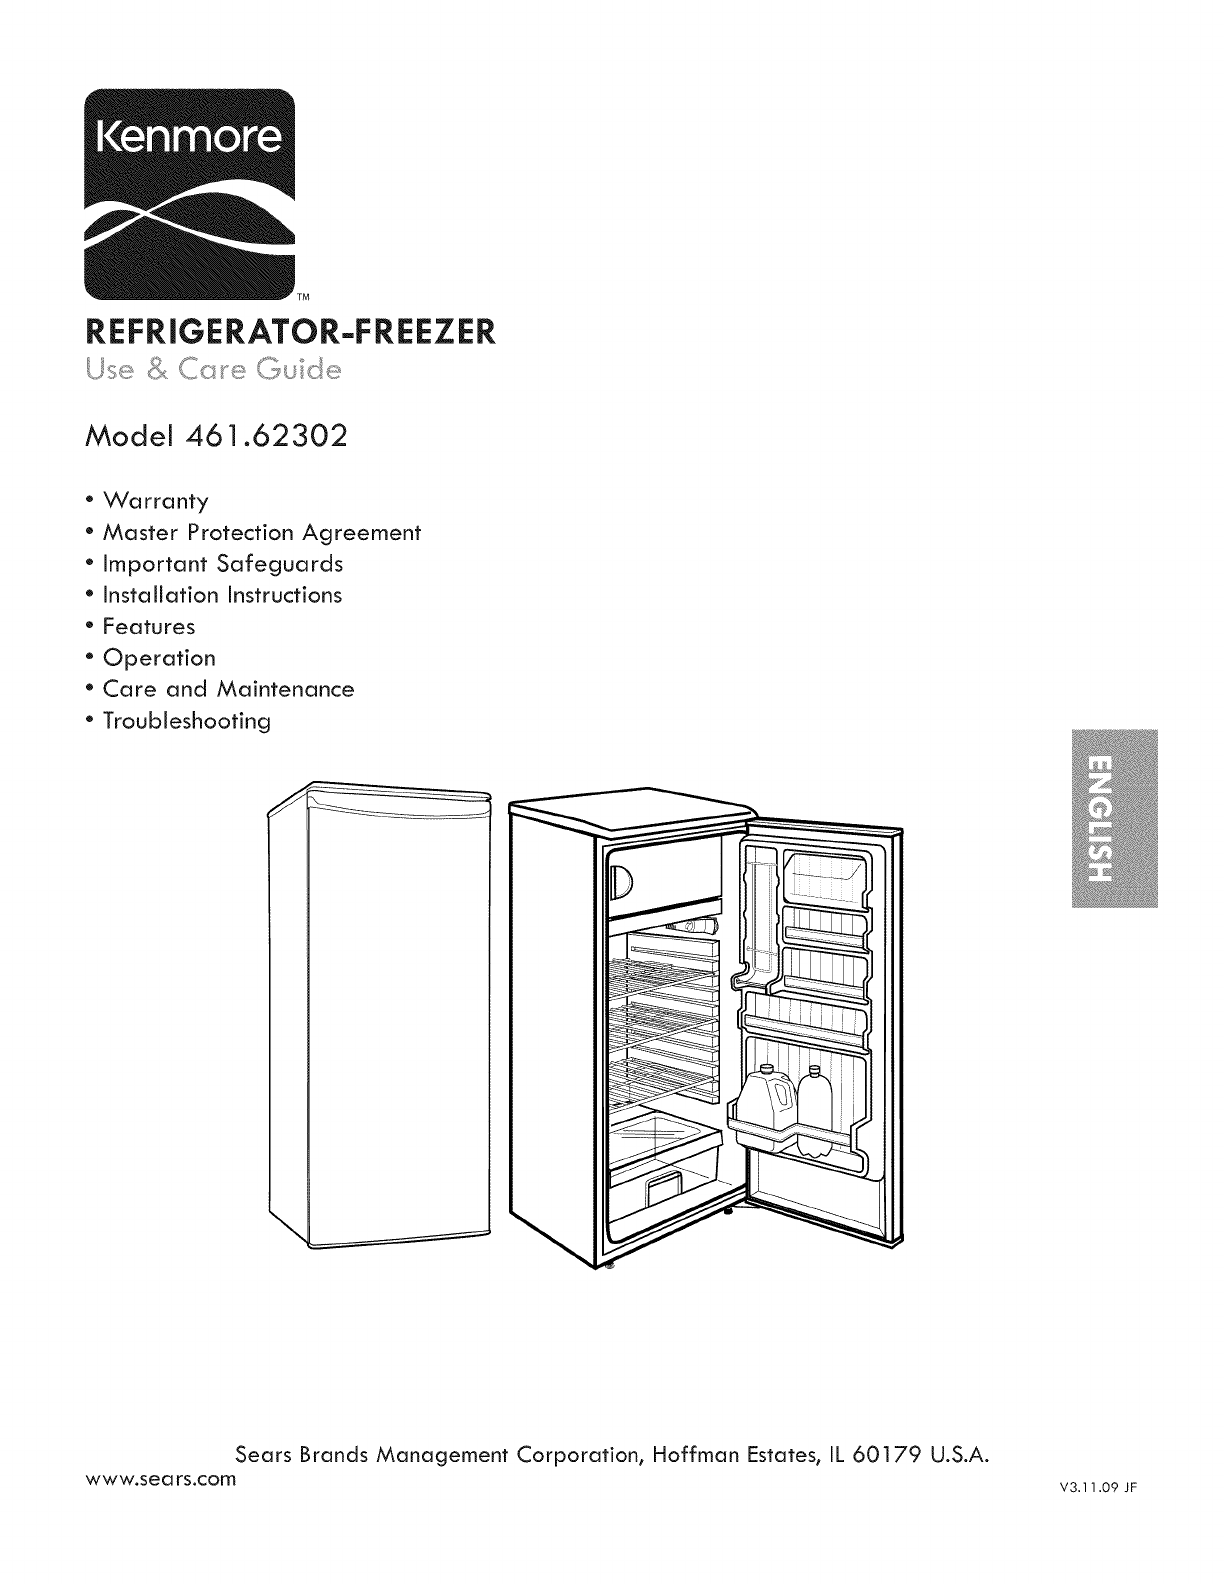 Kenmore 46162302010 User Manual COMPACT REFRIGERATOR